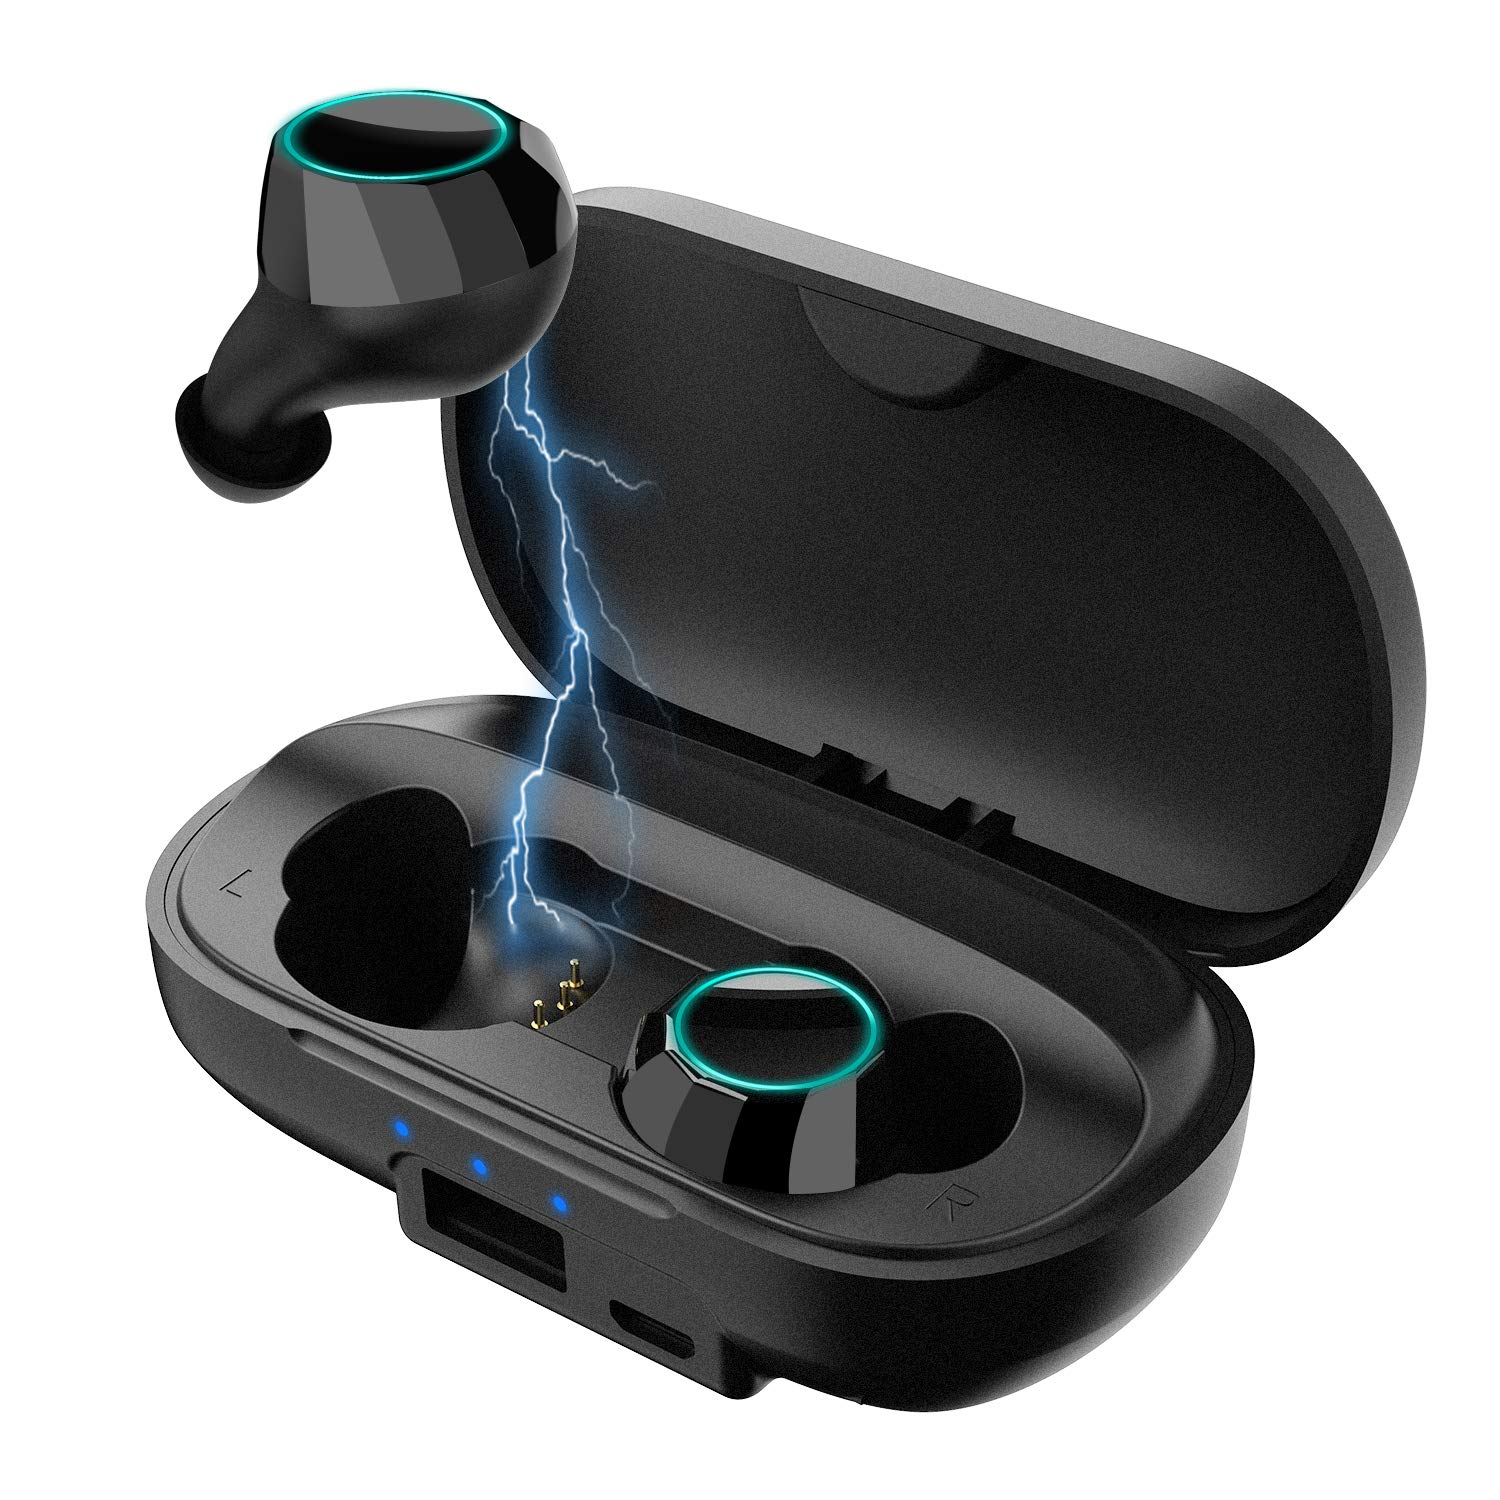 EasyAcc True Wireless Earbuds, TWS Stereo Bluetooth 5.0 Earphones with Deep Bass, IPX6 Water-Proof 80H Playtime in Total Built-in Mic in-Ear Bluetooth Earphones with Charging Case